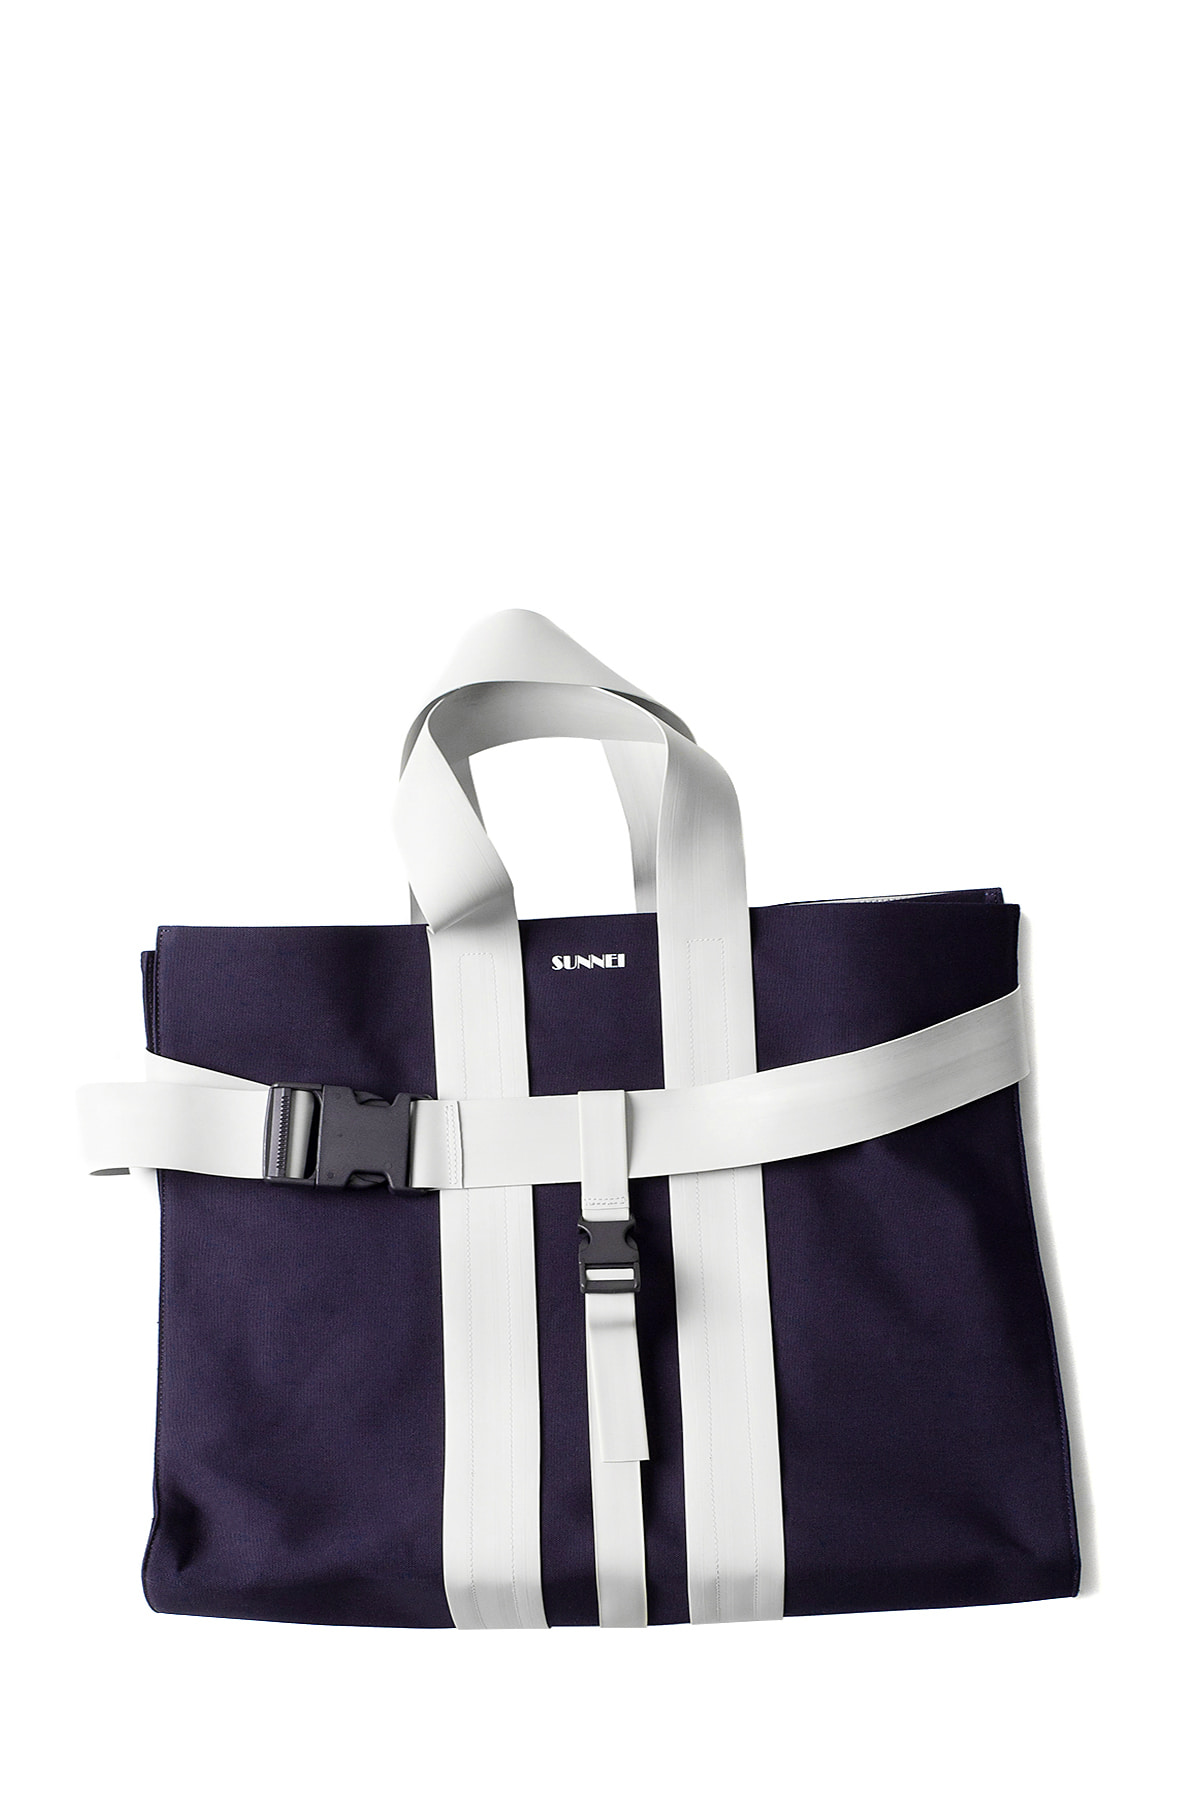 SUNNEI : Messenger Bag (Blue & White)